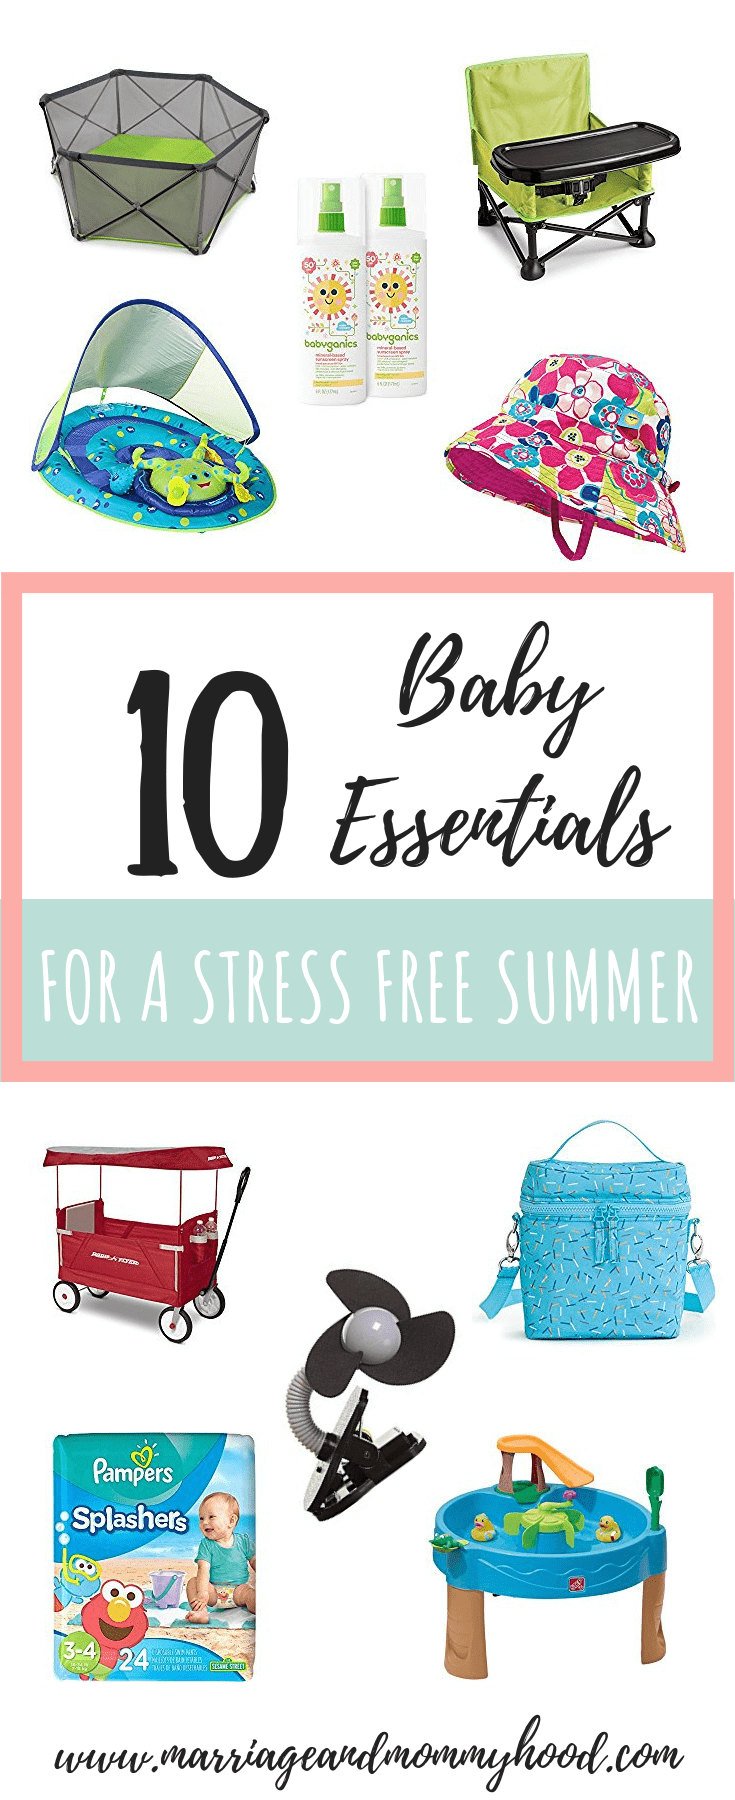 10 Baby Essentials For A Stress Free Summer